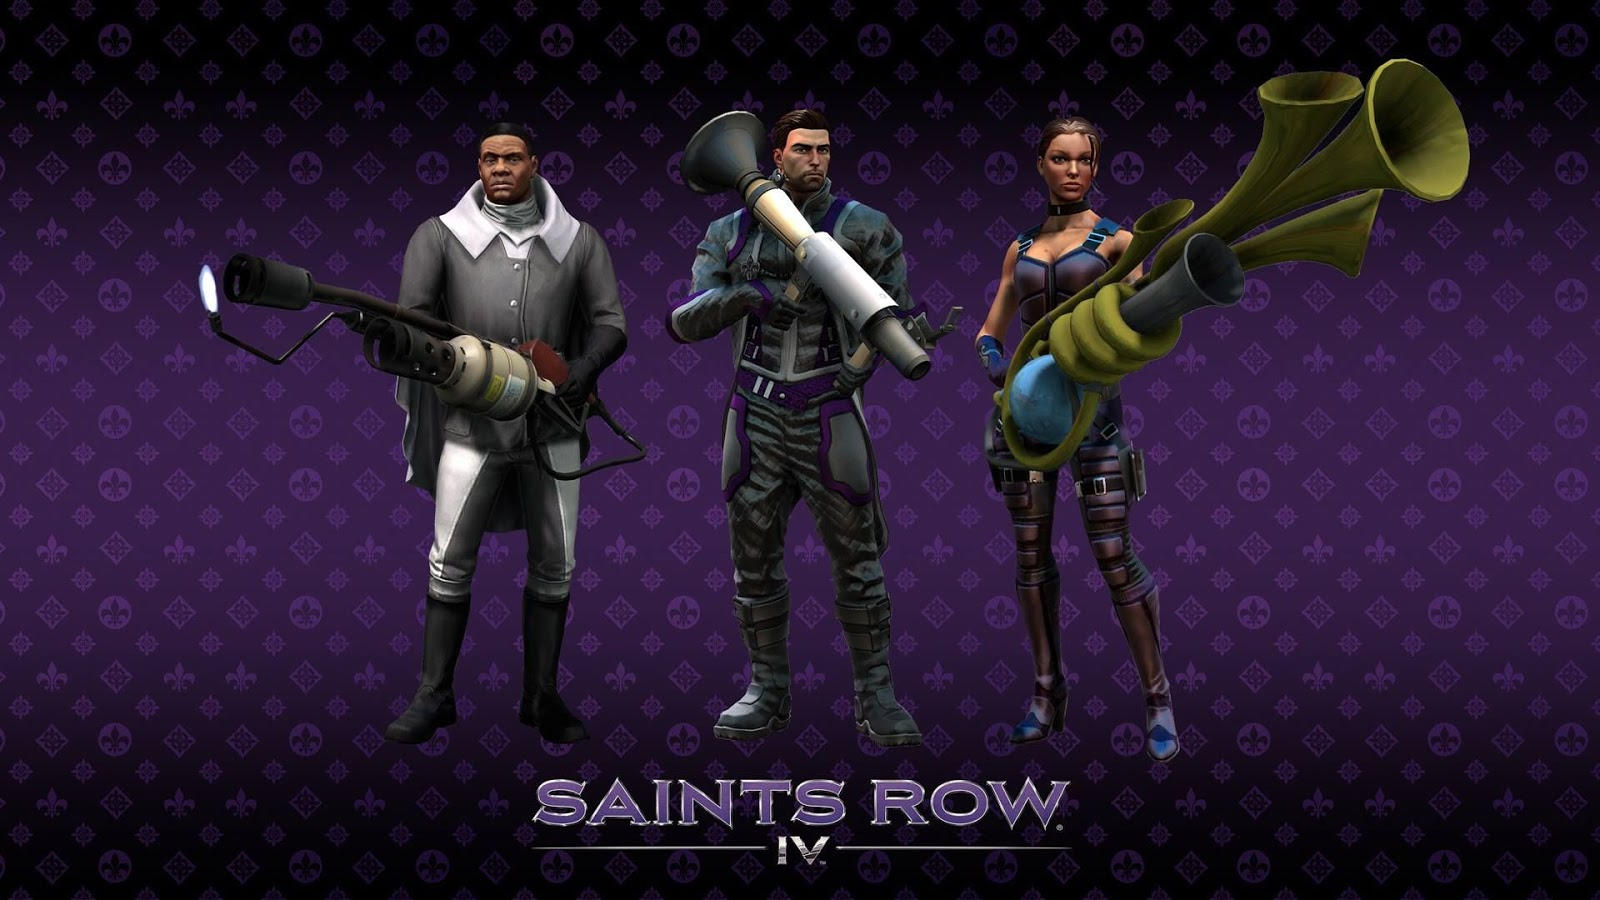 Saints row 4 hd wallpapers walls720 saints row 4 hd wallpapers voltagebd Images